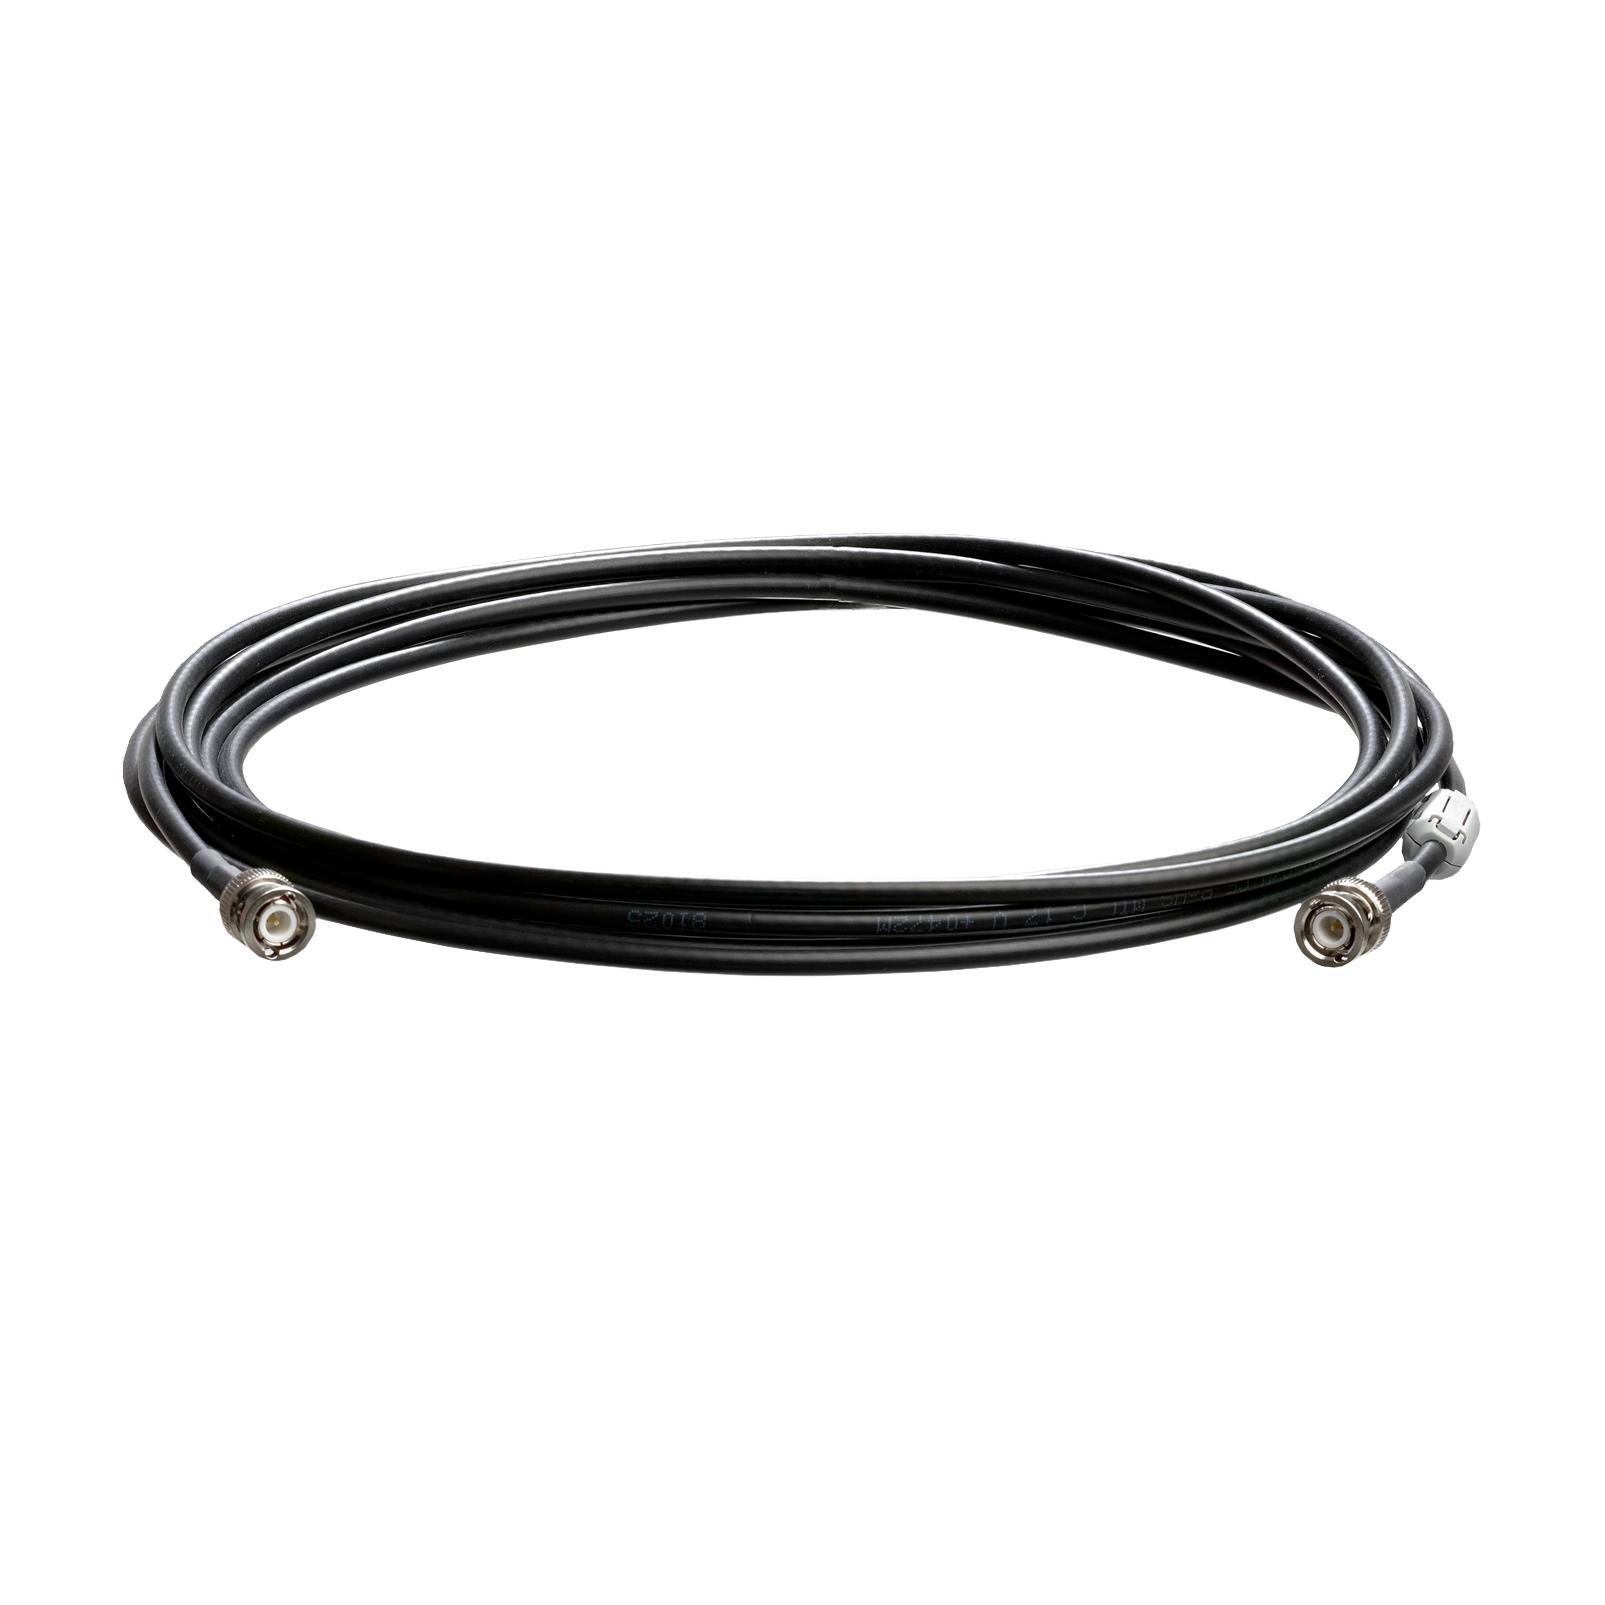 MKA5 - Black - Antenna cable - 5m - Hero